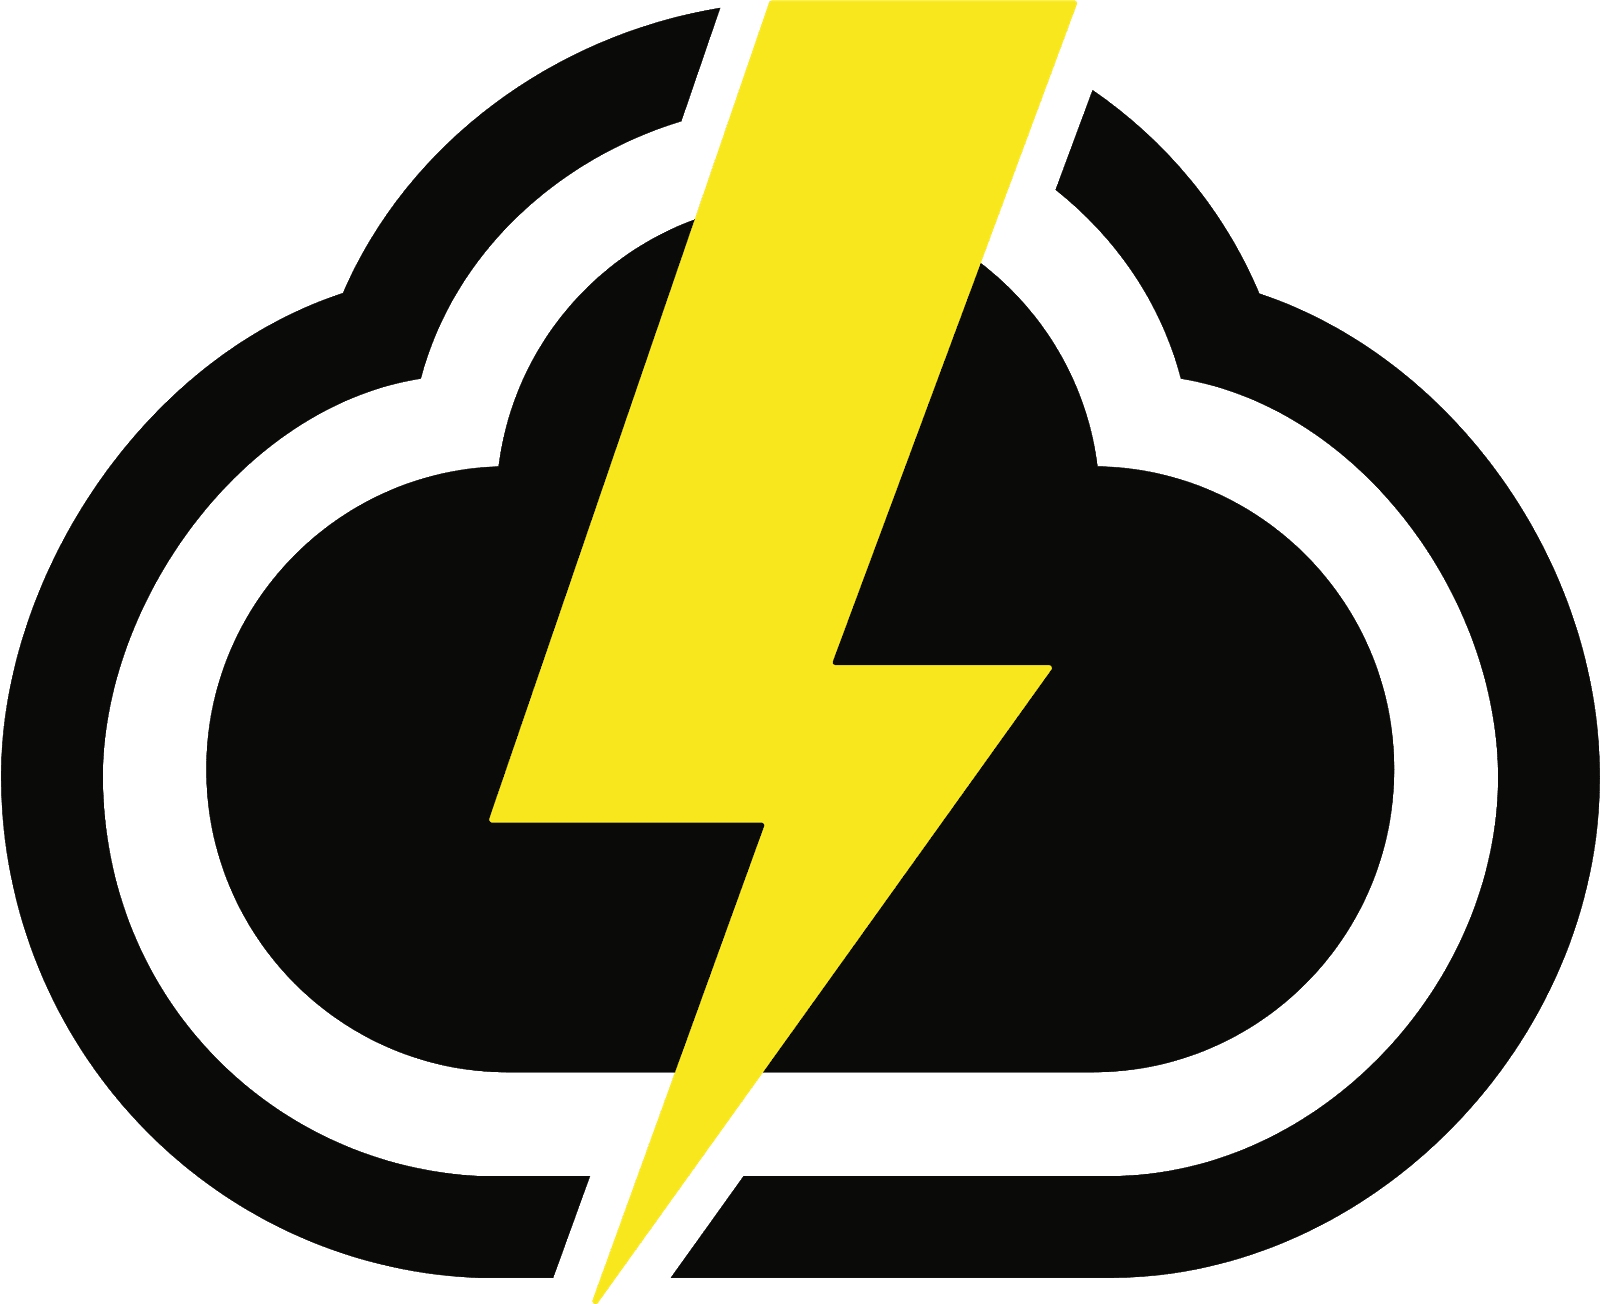 CloudApp upload logo (cloud with lightning)